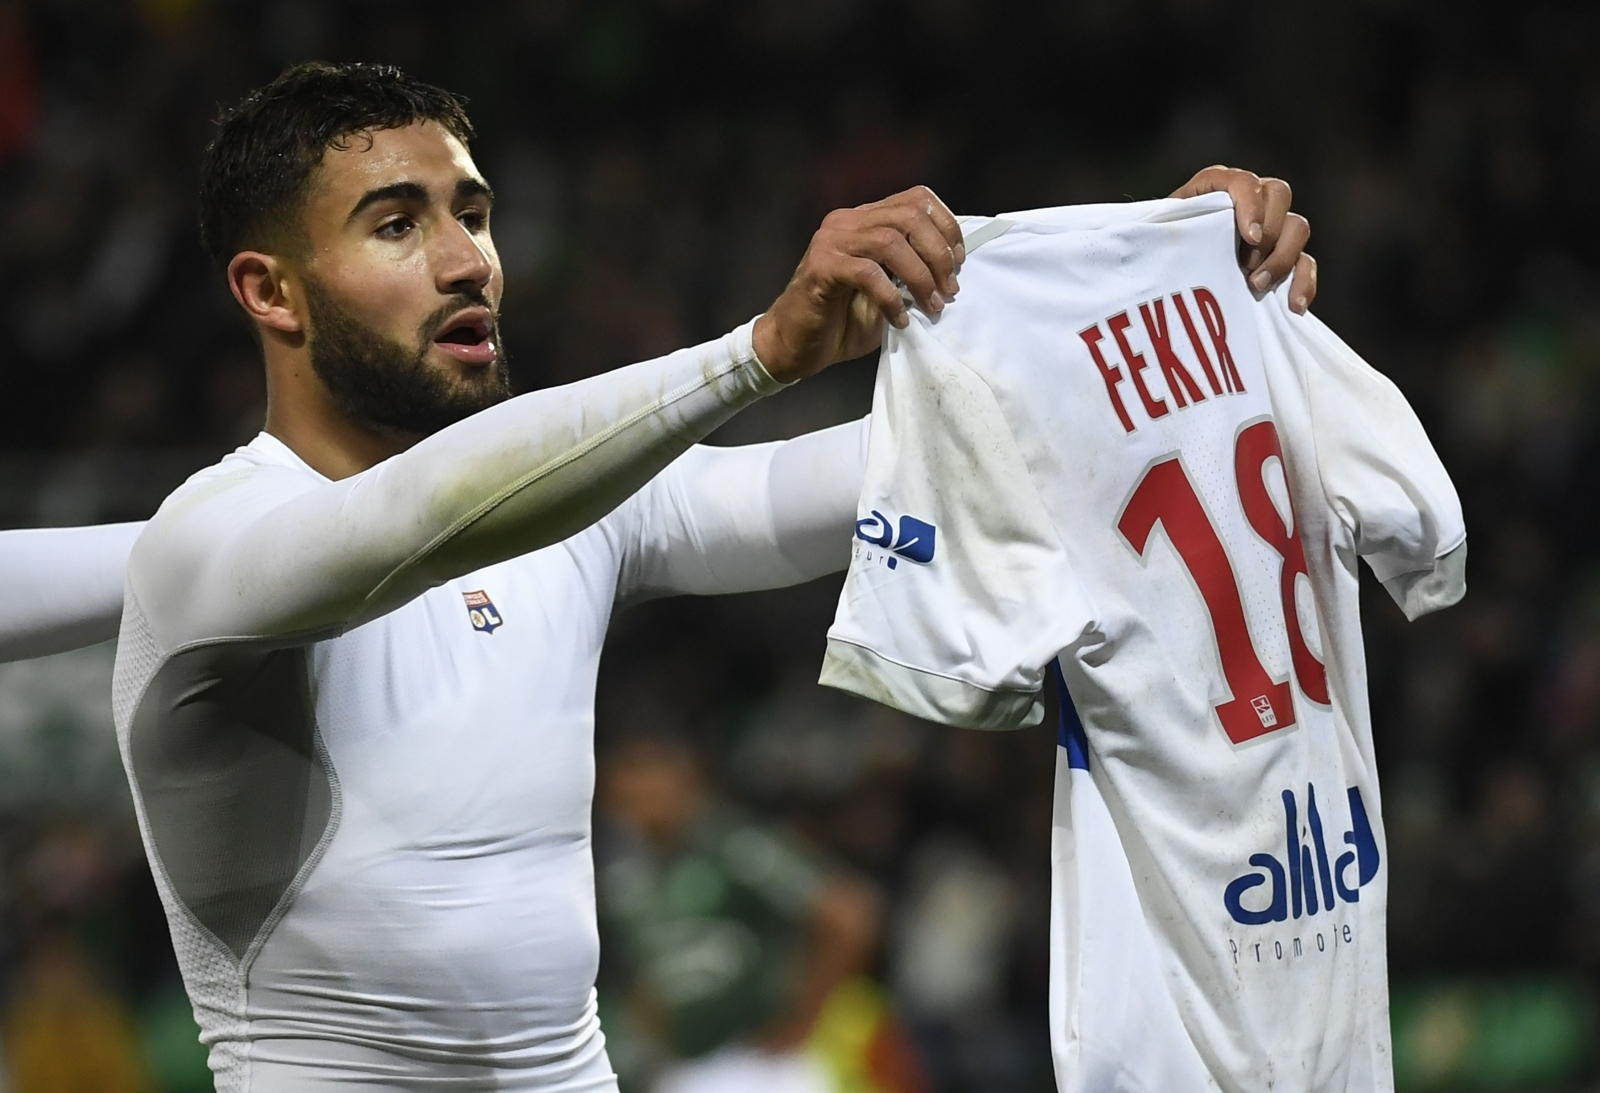 Lyon hopeful of keeping hold of Nabil Fekir amid Arsenal speculation